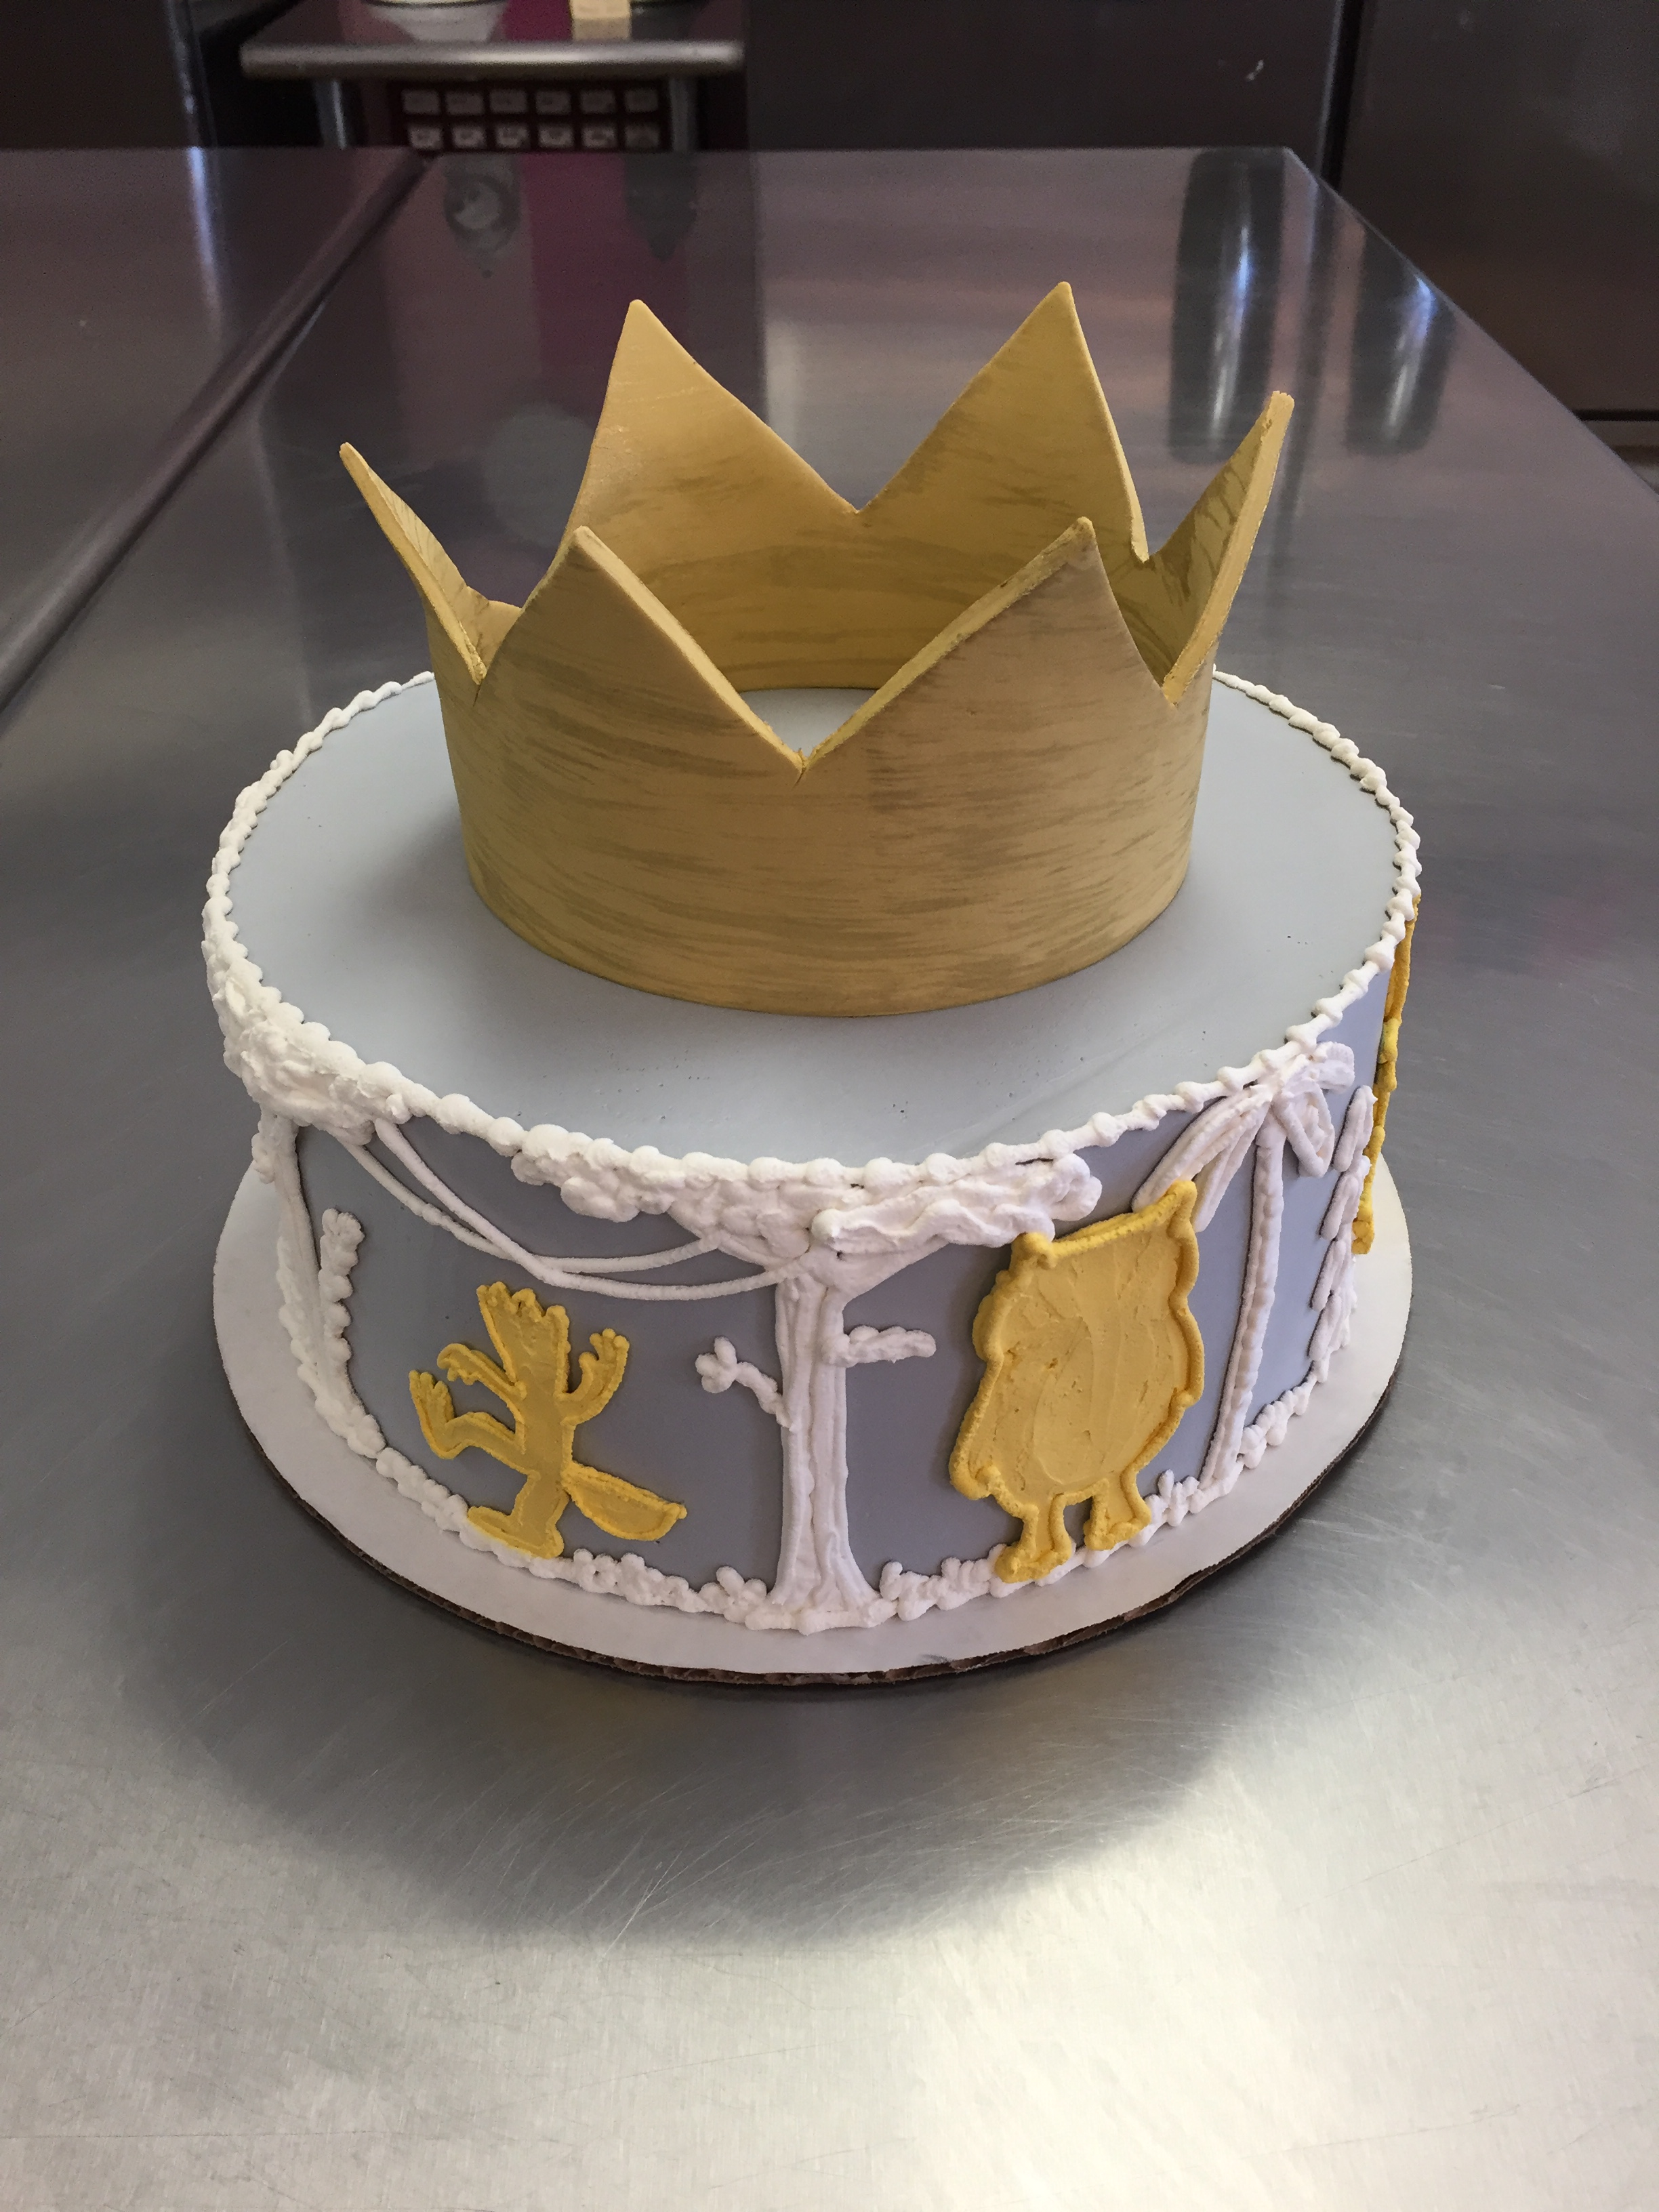 27 - Wild Silhouettes with Fondant Crown